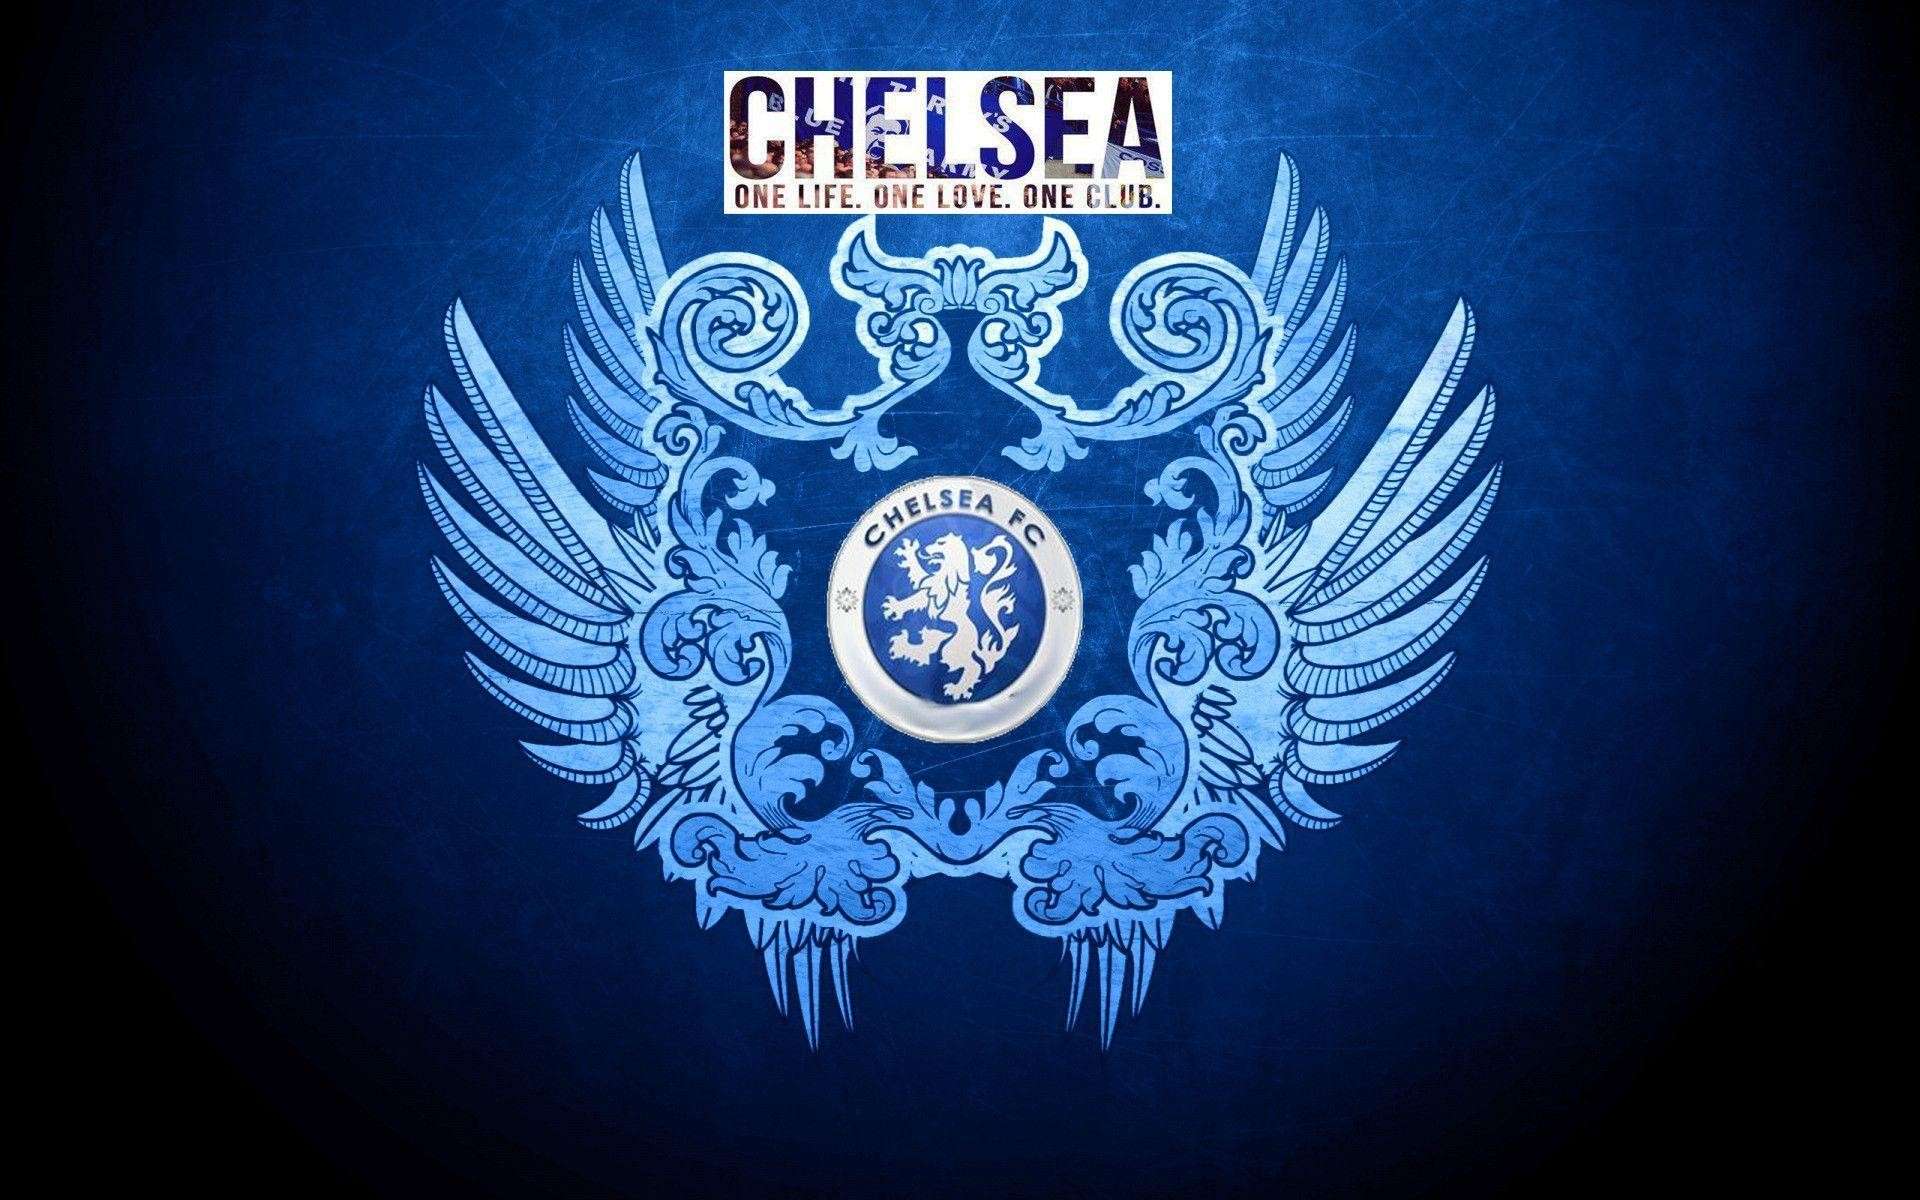 1920x1200 Awesome Logo Wallpaper HD Chelsea FC For PC Computer Logoworldcupq .